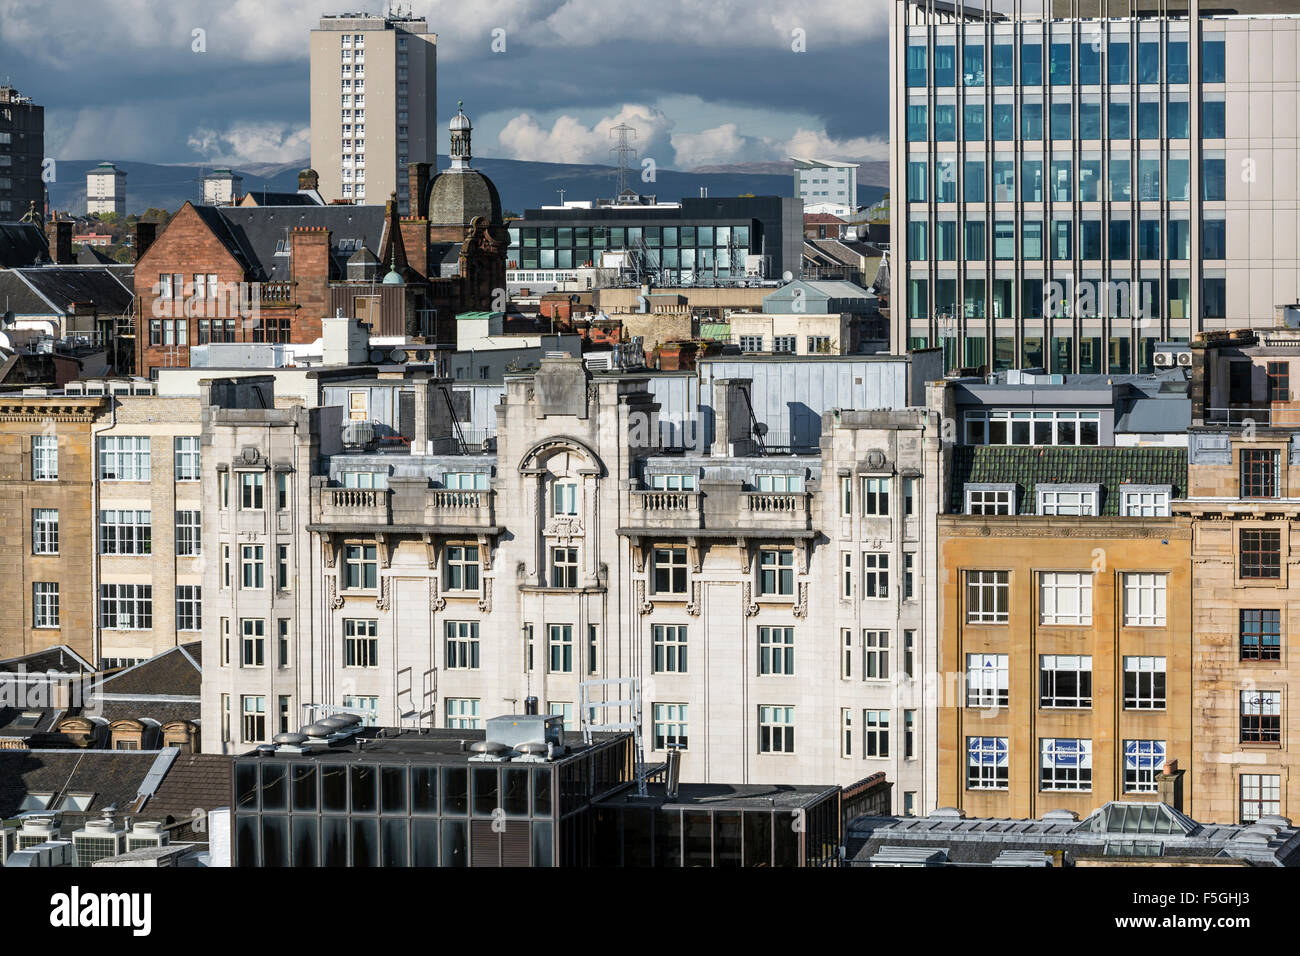 Rooftop view over Glasgow city centre, Scotland, UK Stock Photo